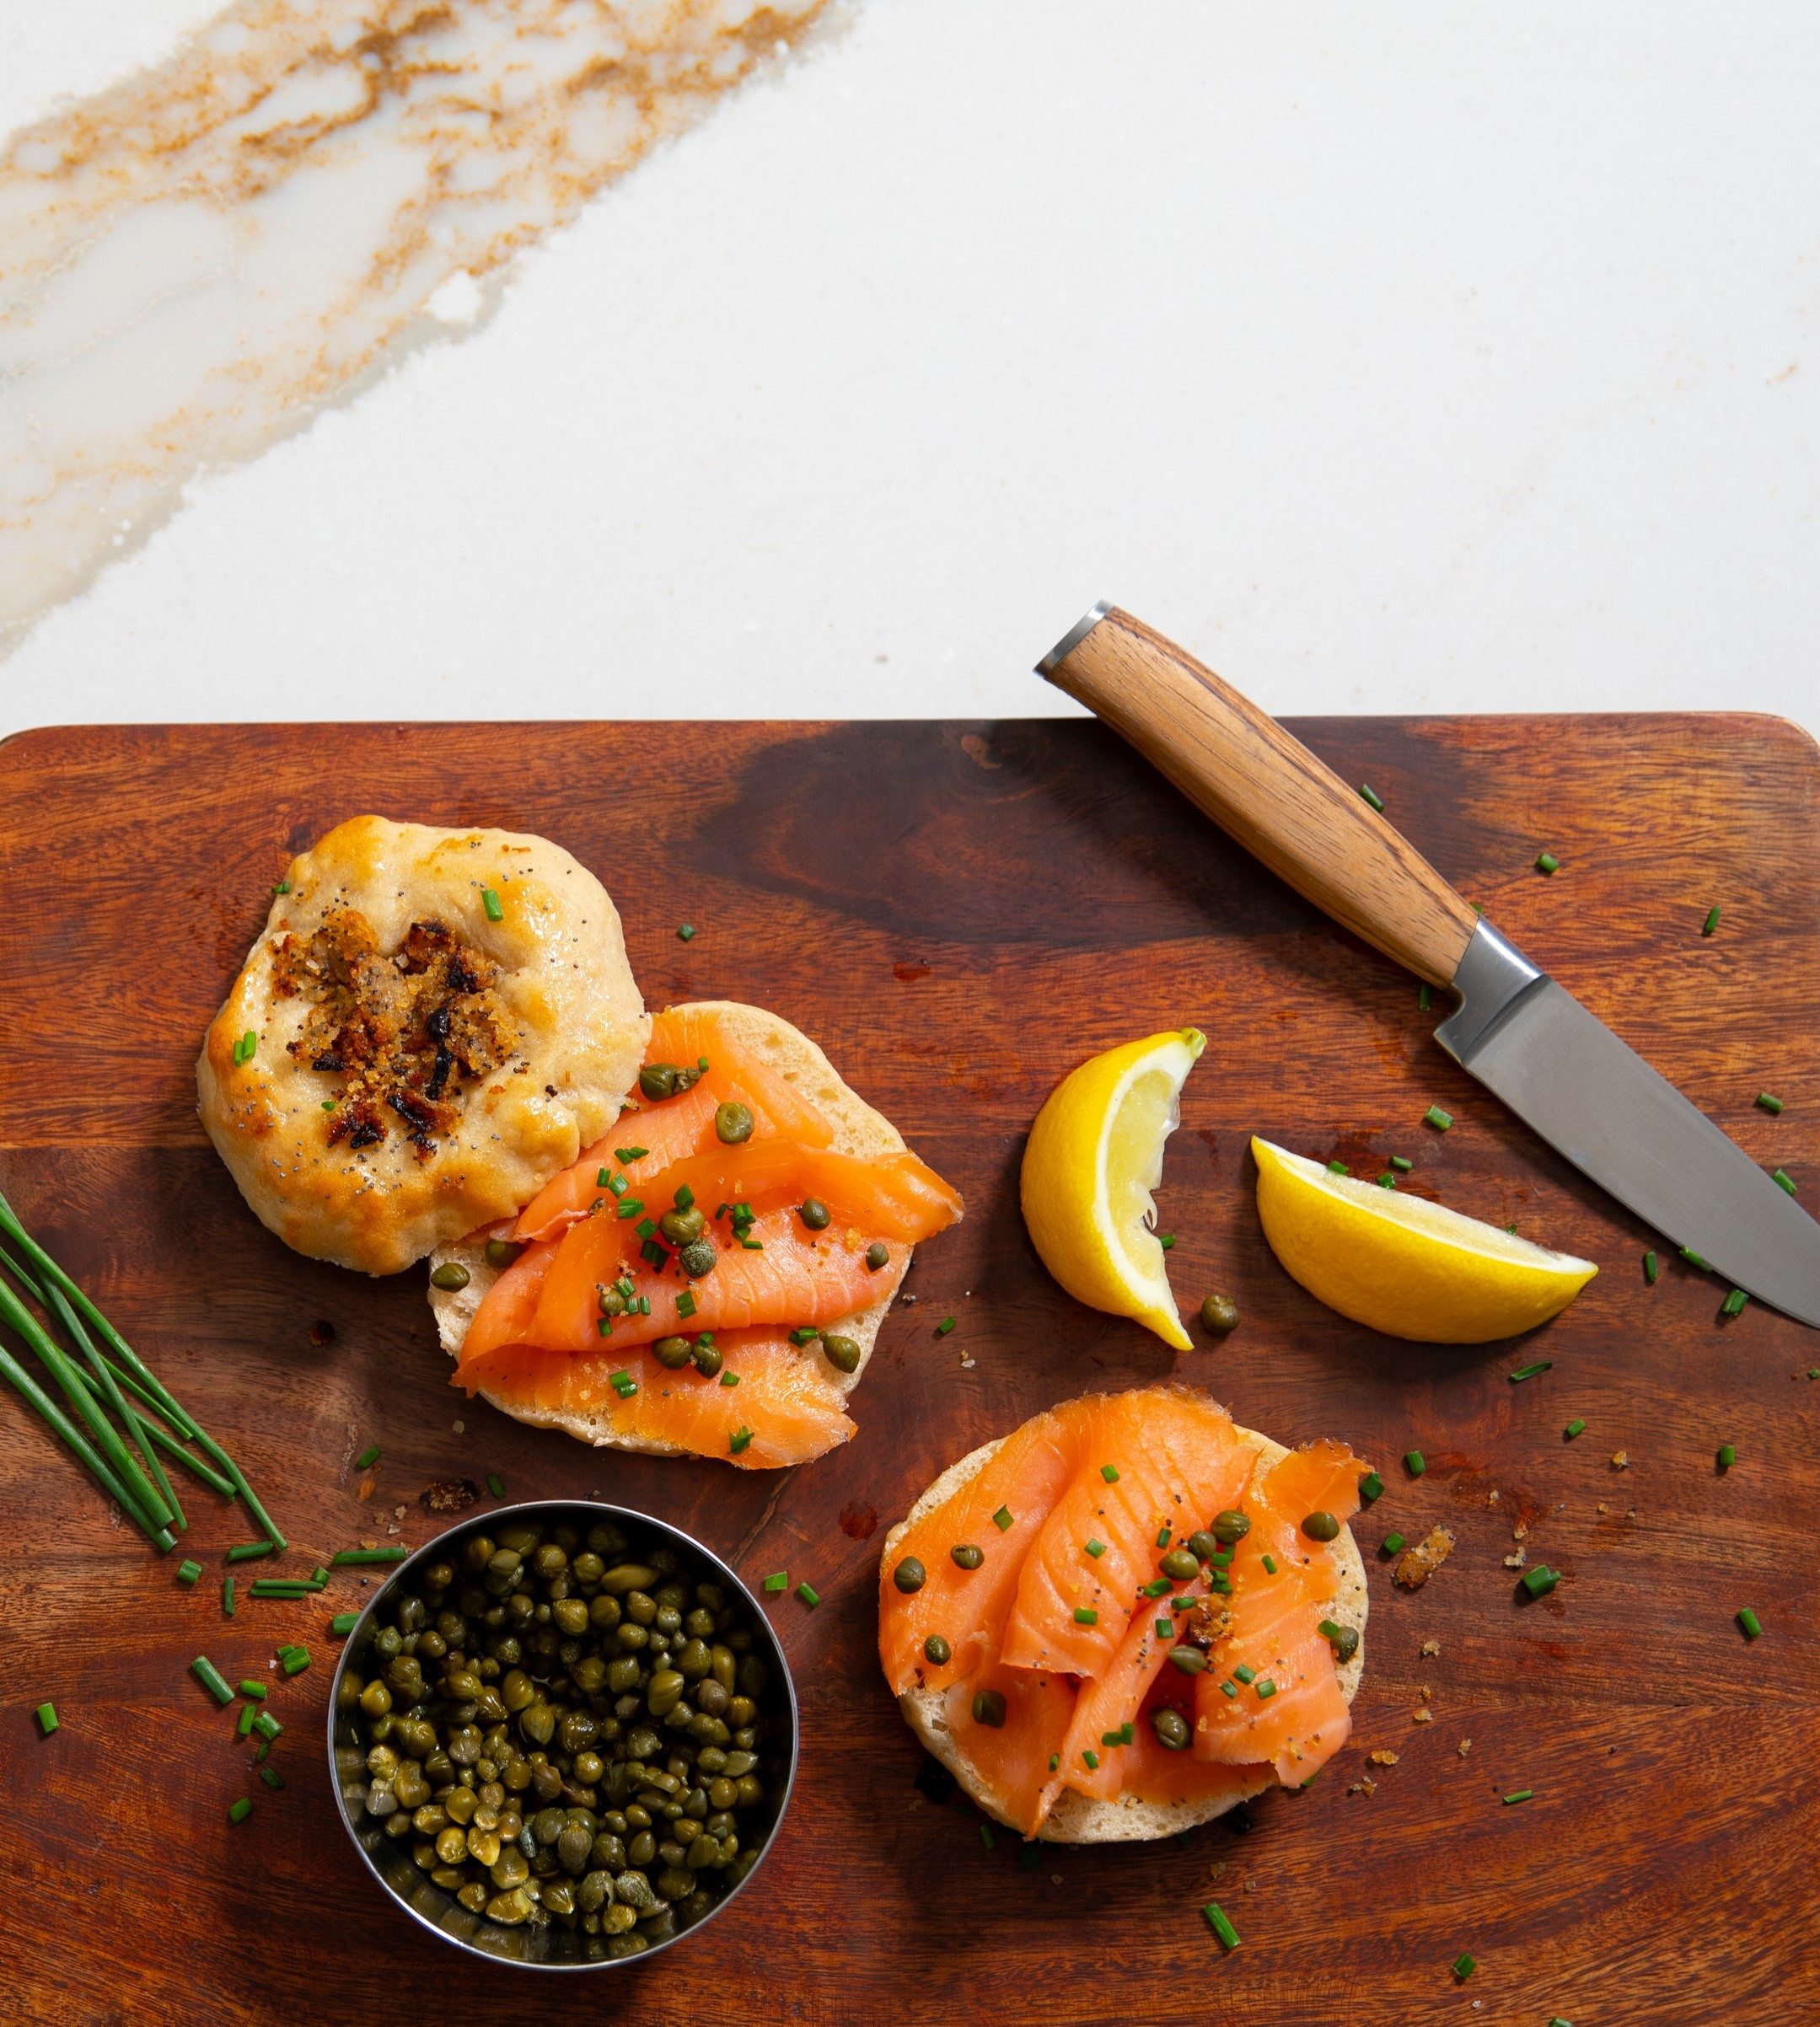 savory bialys and gravlax